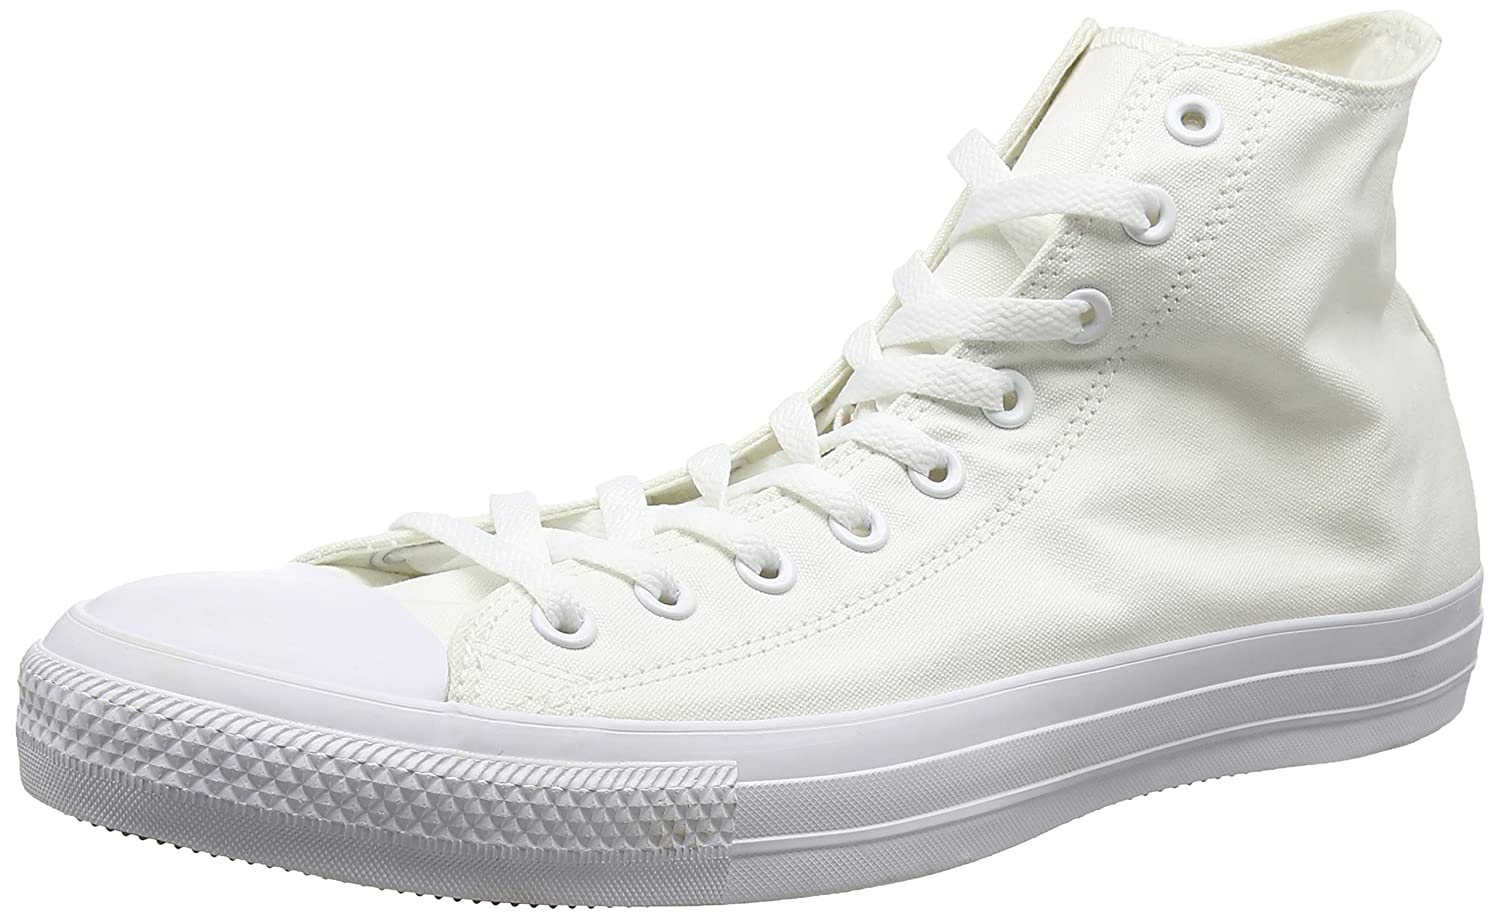 Converse Chuck Taylor All Star 2018 Seasonal High Top Sneaker B01BKG8XOM 16 M US|White Monochrome